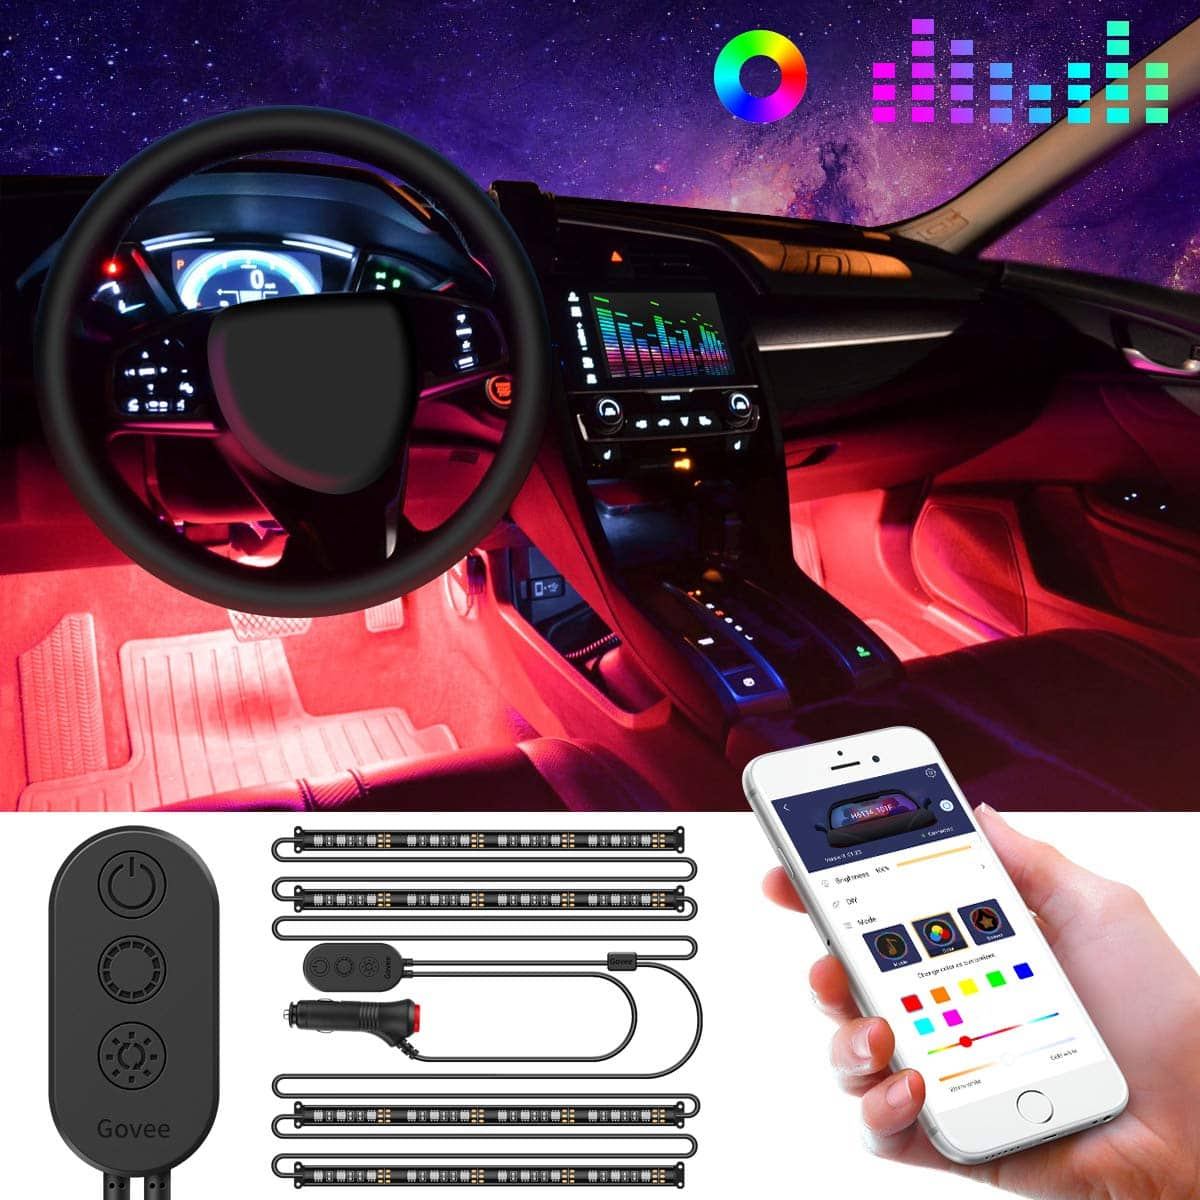 4-Piece Govee 48 LED Interior Car Lights w/ DC 12V Car Charger $20 + Free Shipping w/ Prime or on $25+